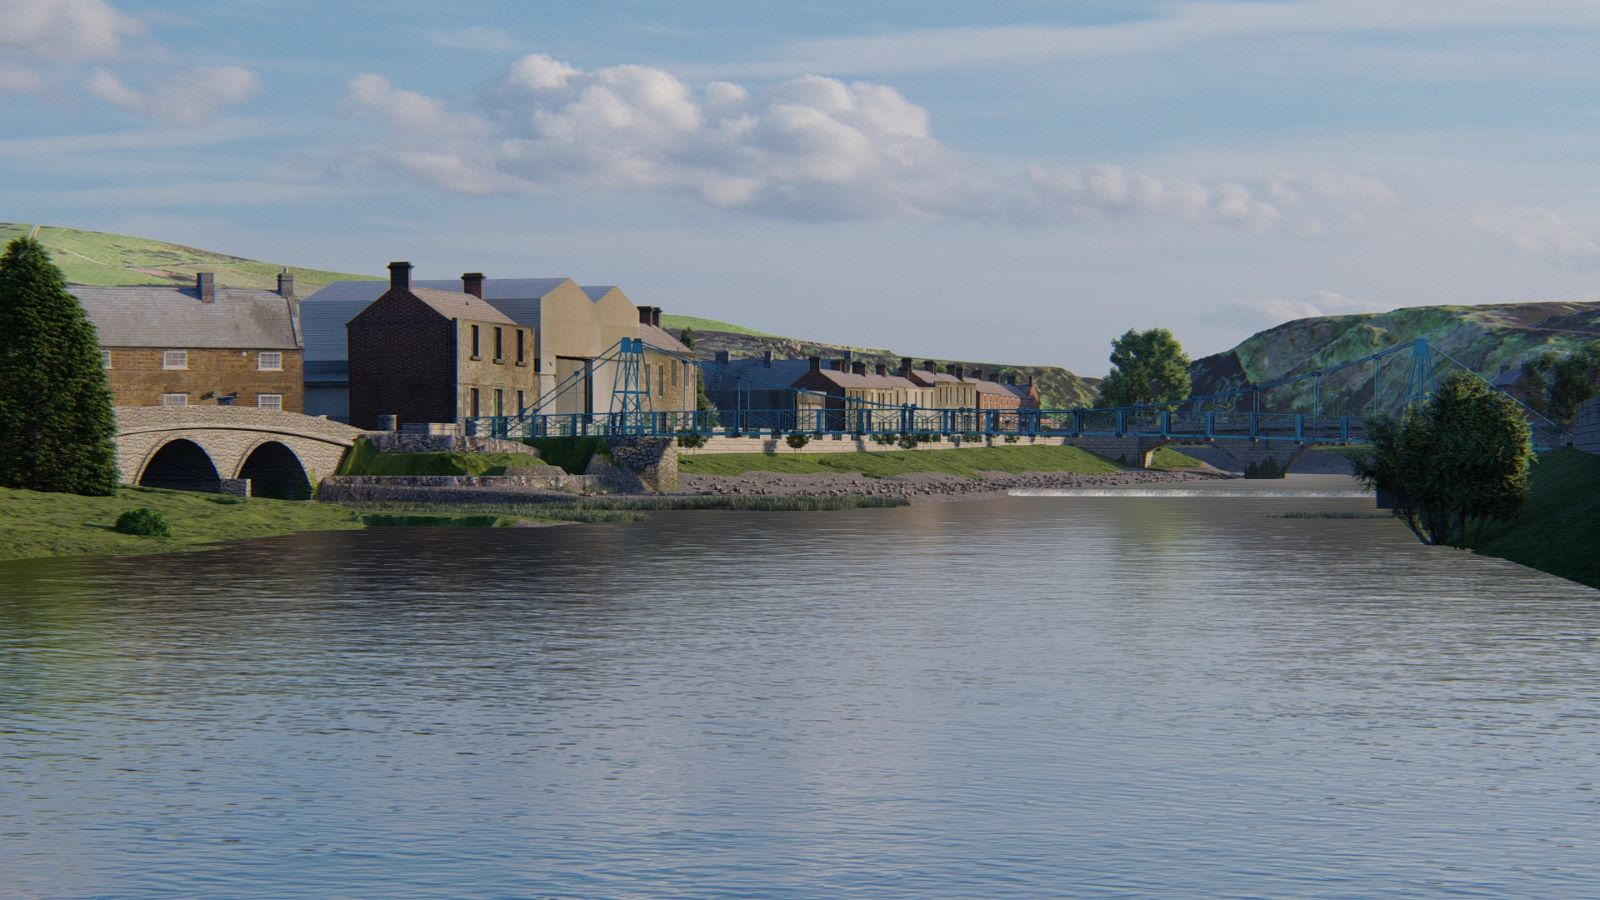 Langholm Flood Protection Scheme_3D resized 2.jpg